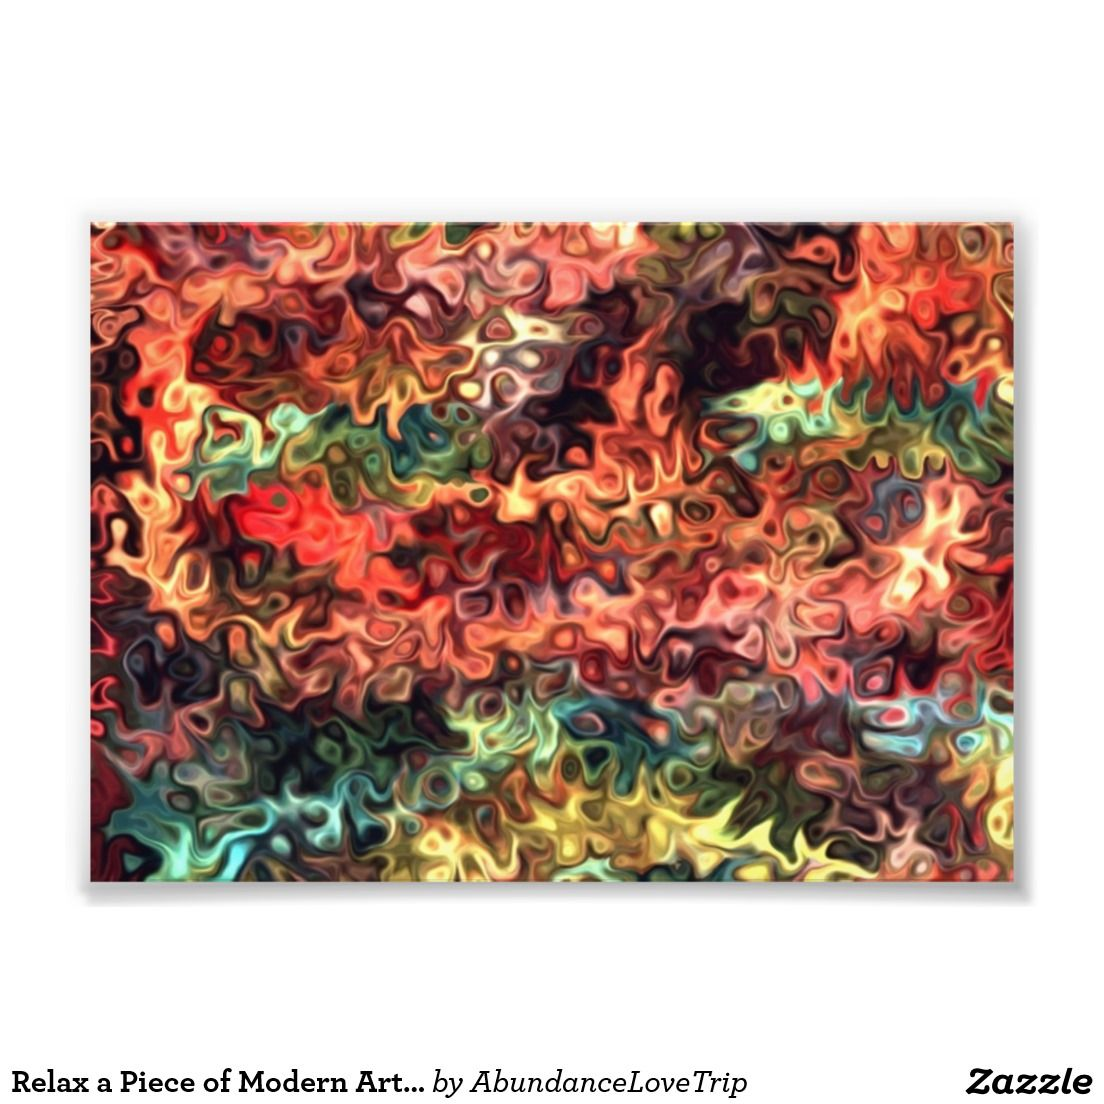 Relax a Piece of Modern Art 5.55 Photo Art under $10 mini art print